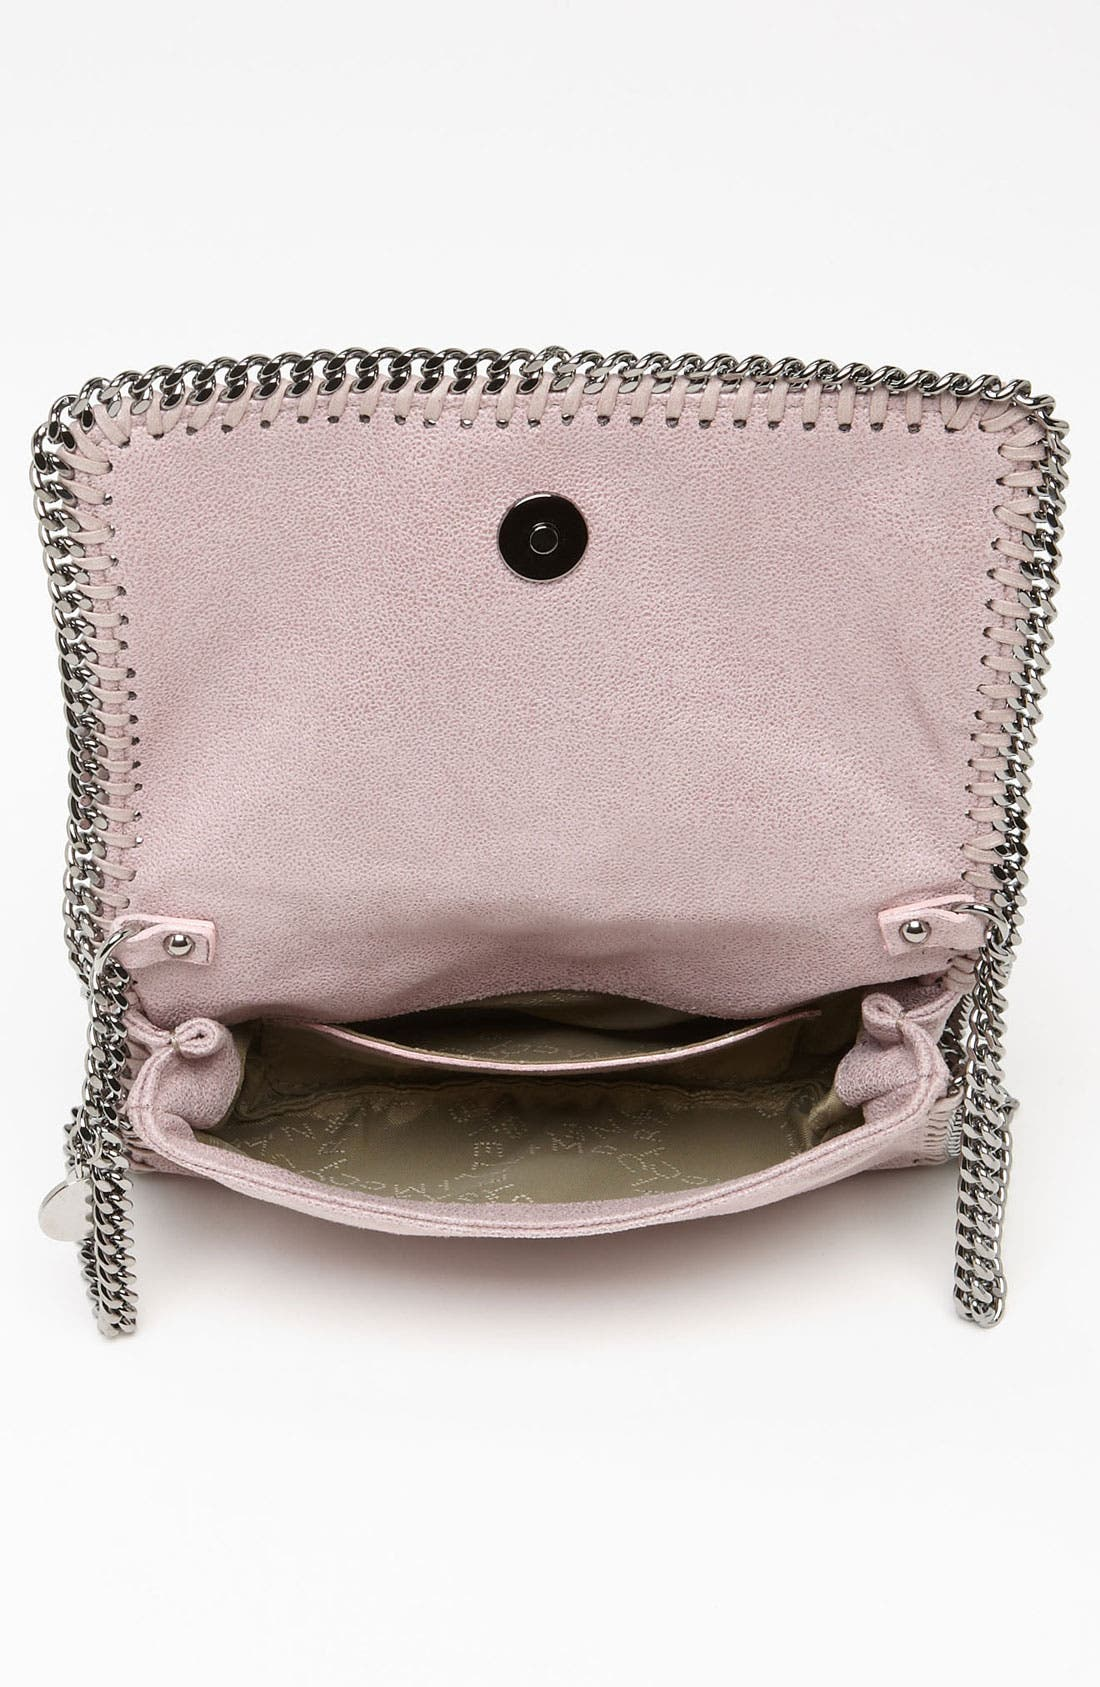 Alternate Image 3  - Stella McCartney 'Falabella' Shaggy Deer Crossbody Bag